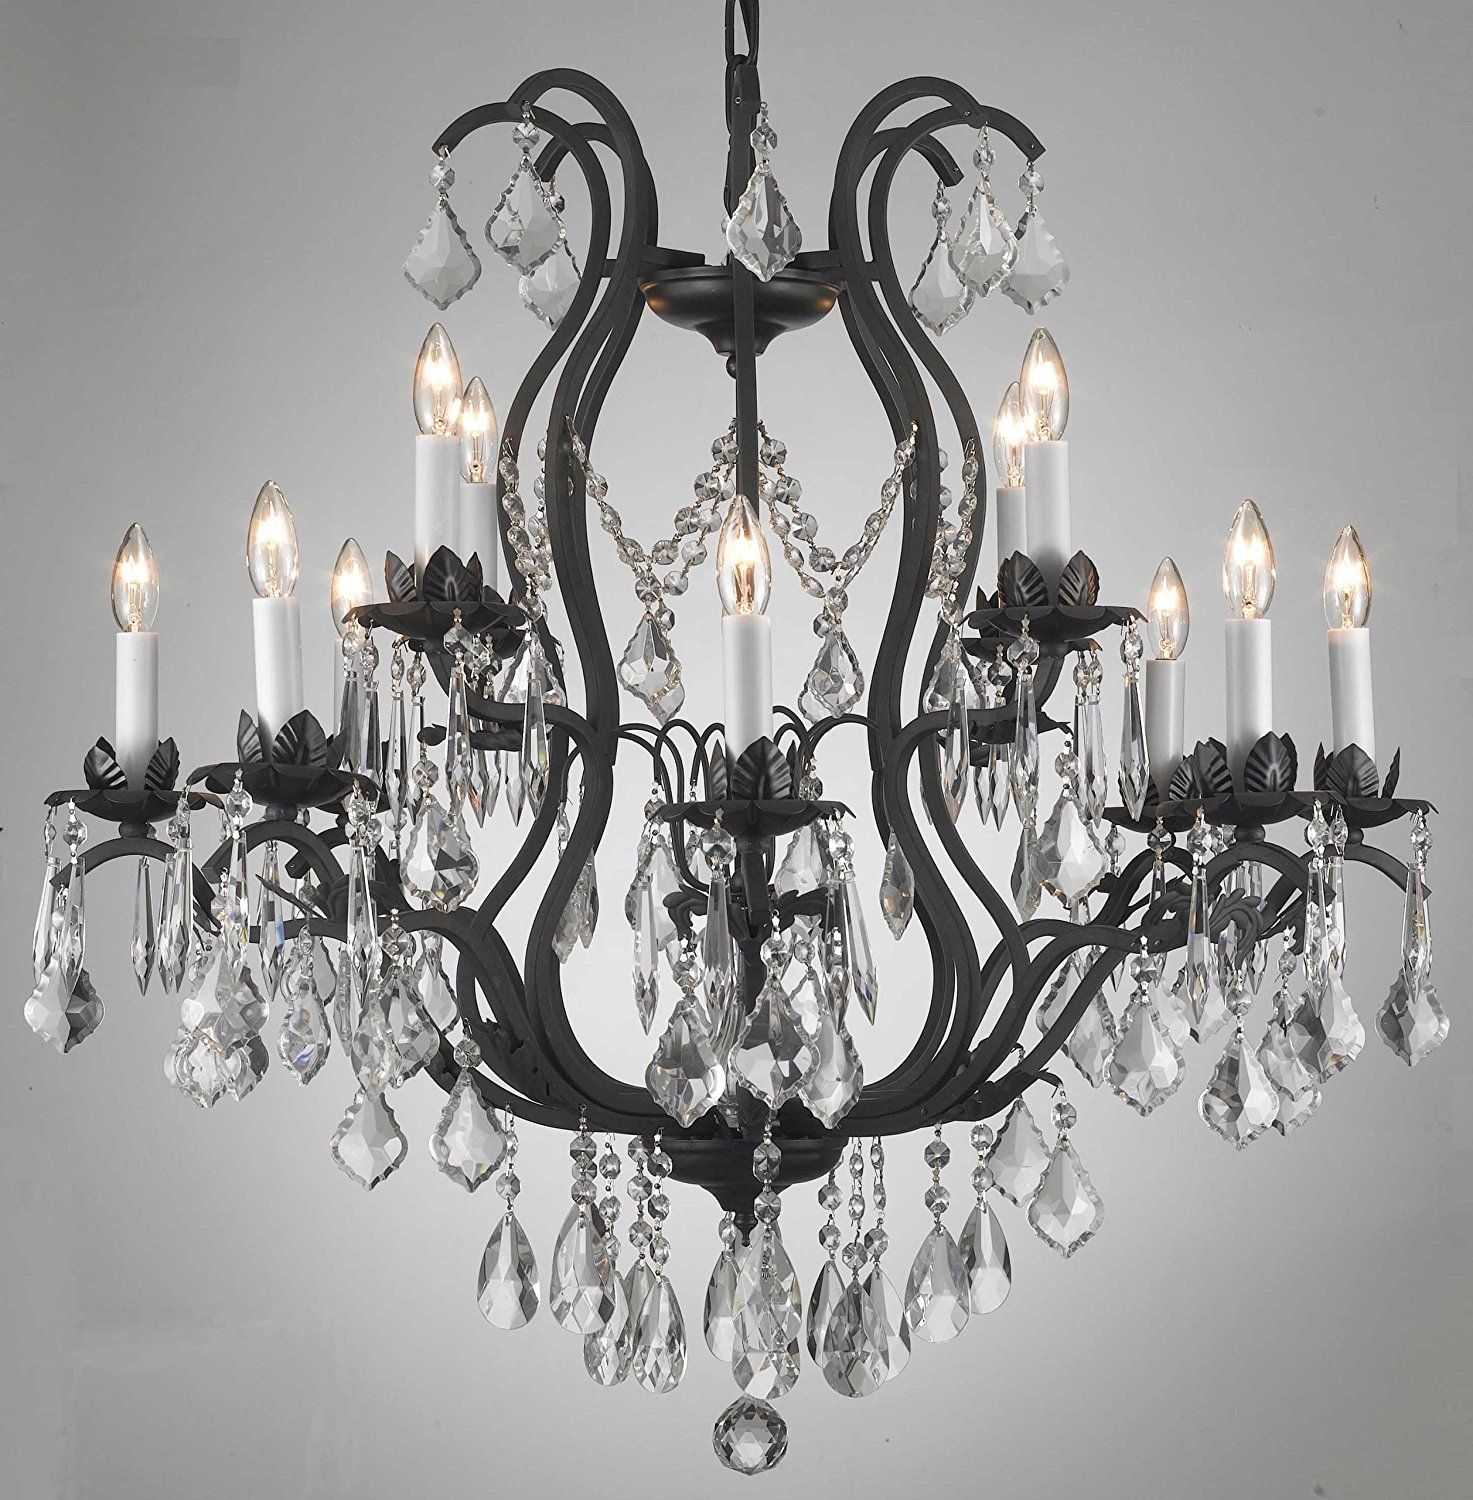 Chandelier Crystals | Foyer Crystal Chandeliers | Strass Crystal Chandeliers